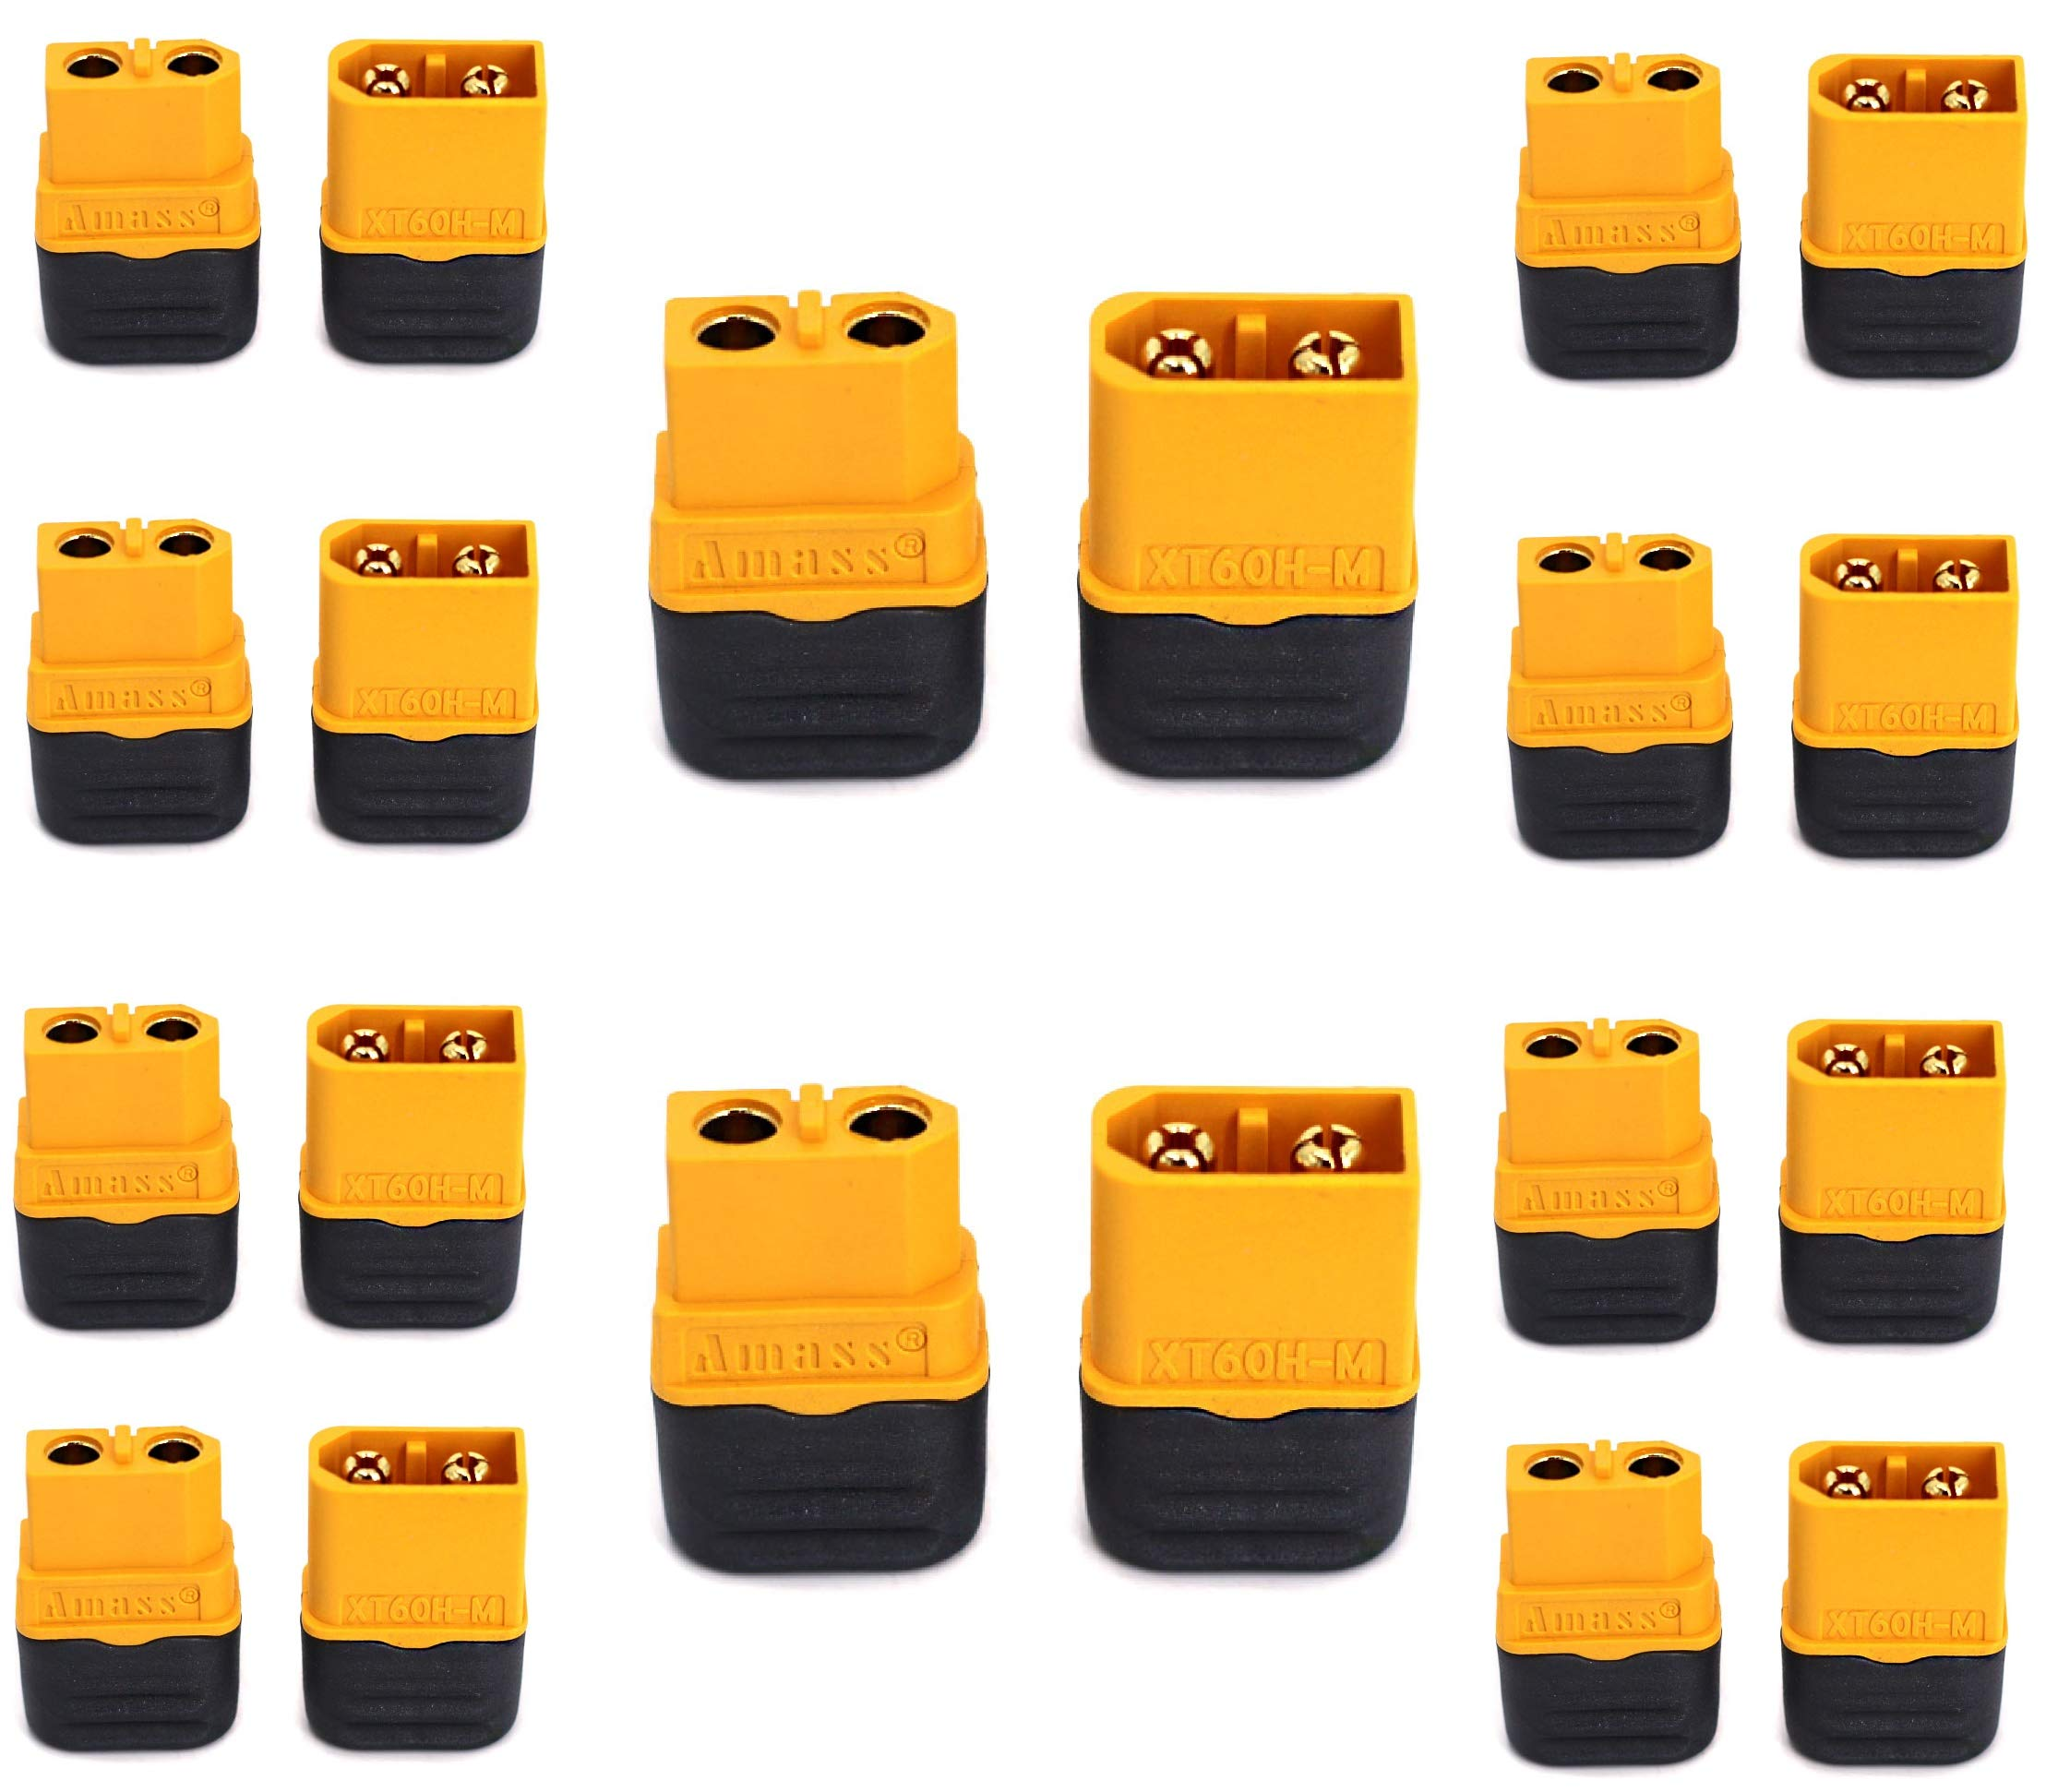 Amass XT60H 10 Pair Upgraded XT60 Connectors Male Female Power Plug with Sheath for Lipo Batteries